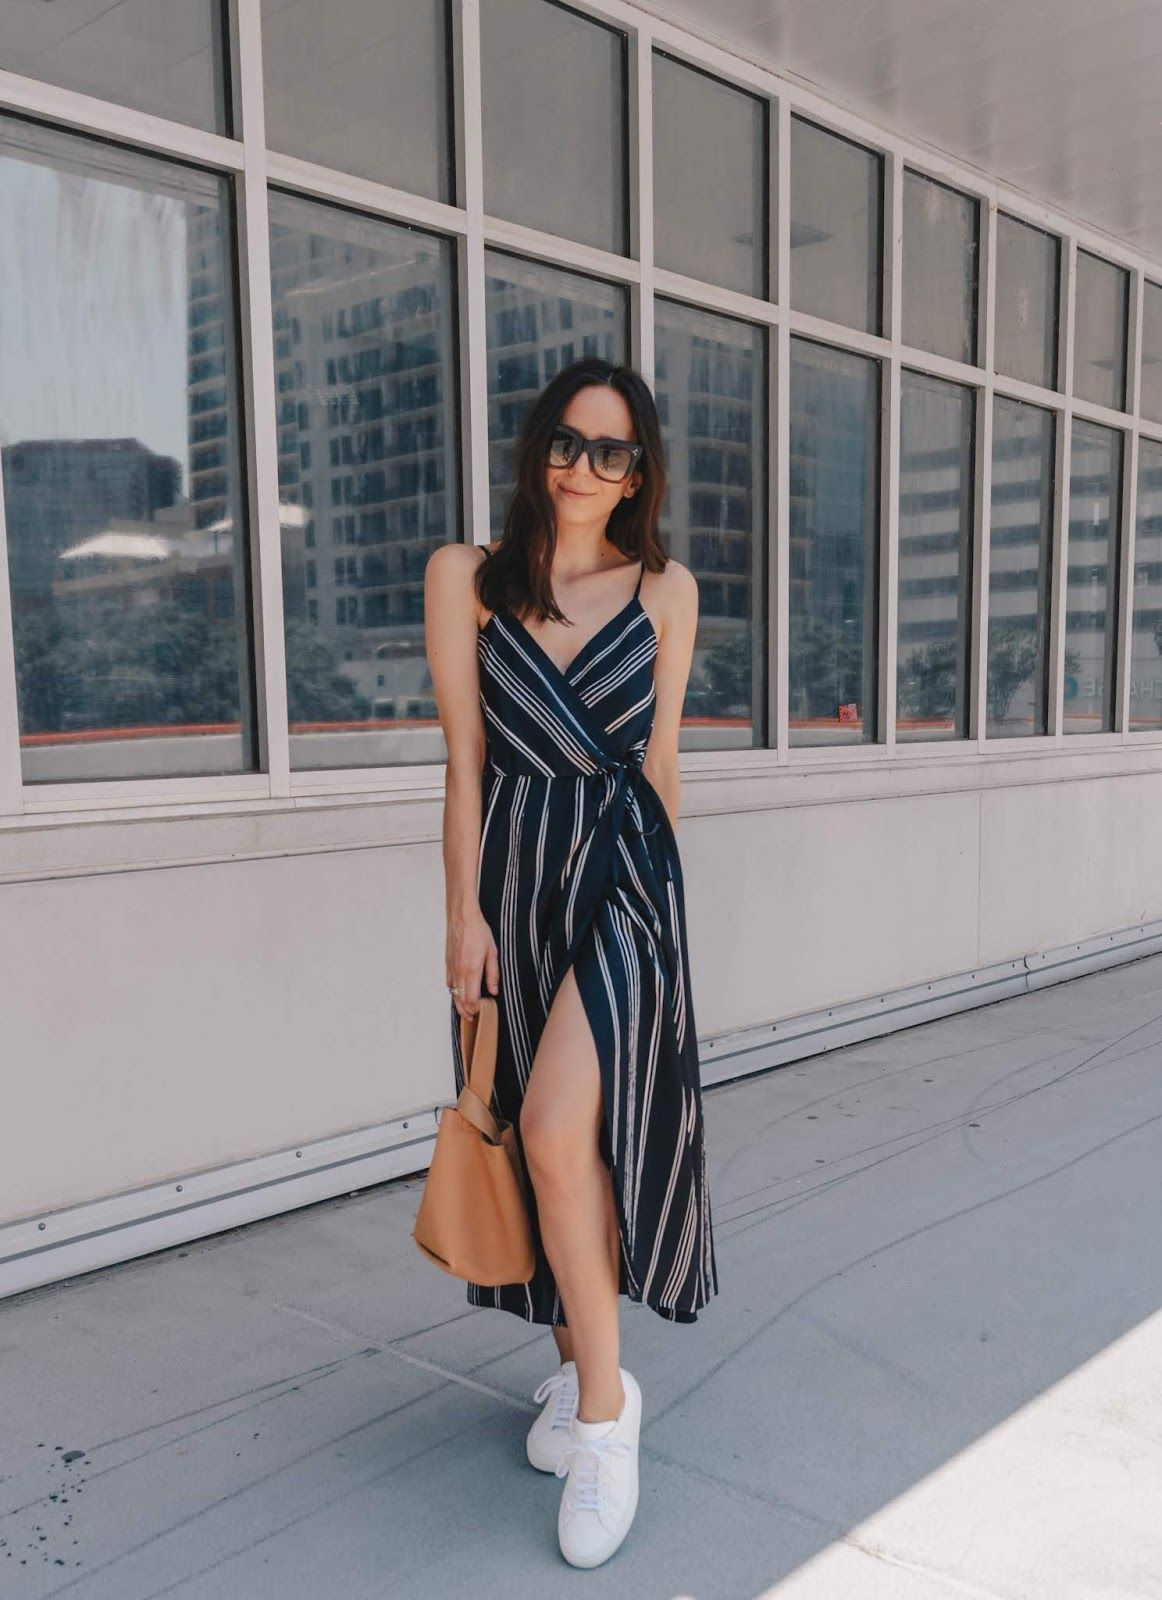 Slip dress and sneaker outfit. | Simple summer outfits, Dress and sneakers  outfit, Dress with sneakers